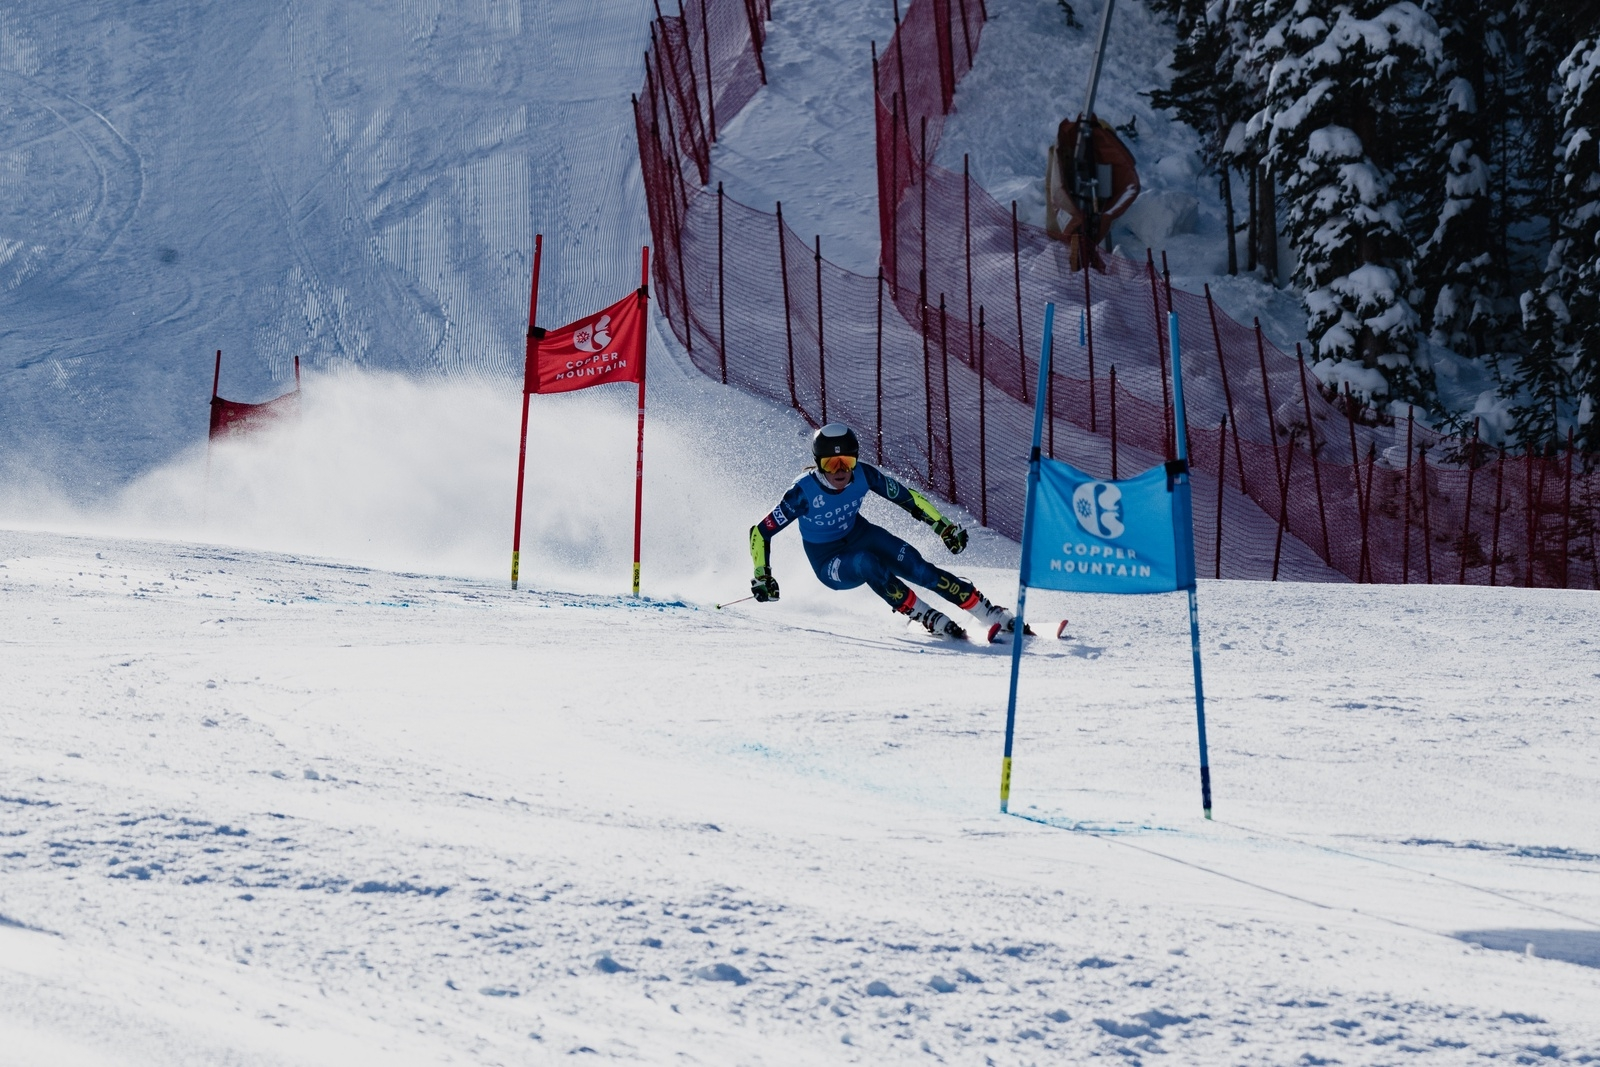 A skier competes at the U.S. Alpine Championships at Copper Mountain Resort earlier this week, a replacement event for a spring national championships that was canceled due to the novel coronavirus.   Photo by Max Hall / U.S. Ski & Snowboard